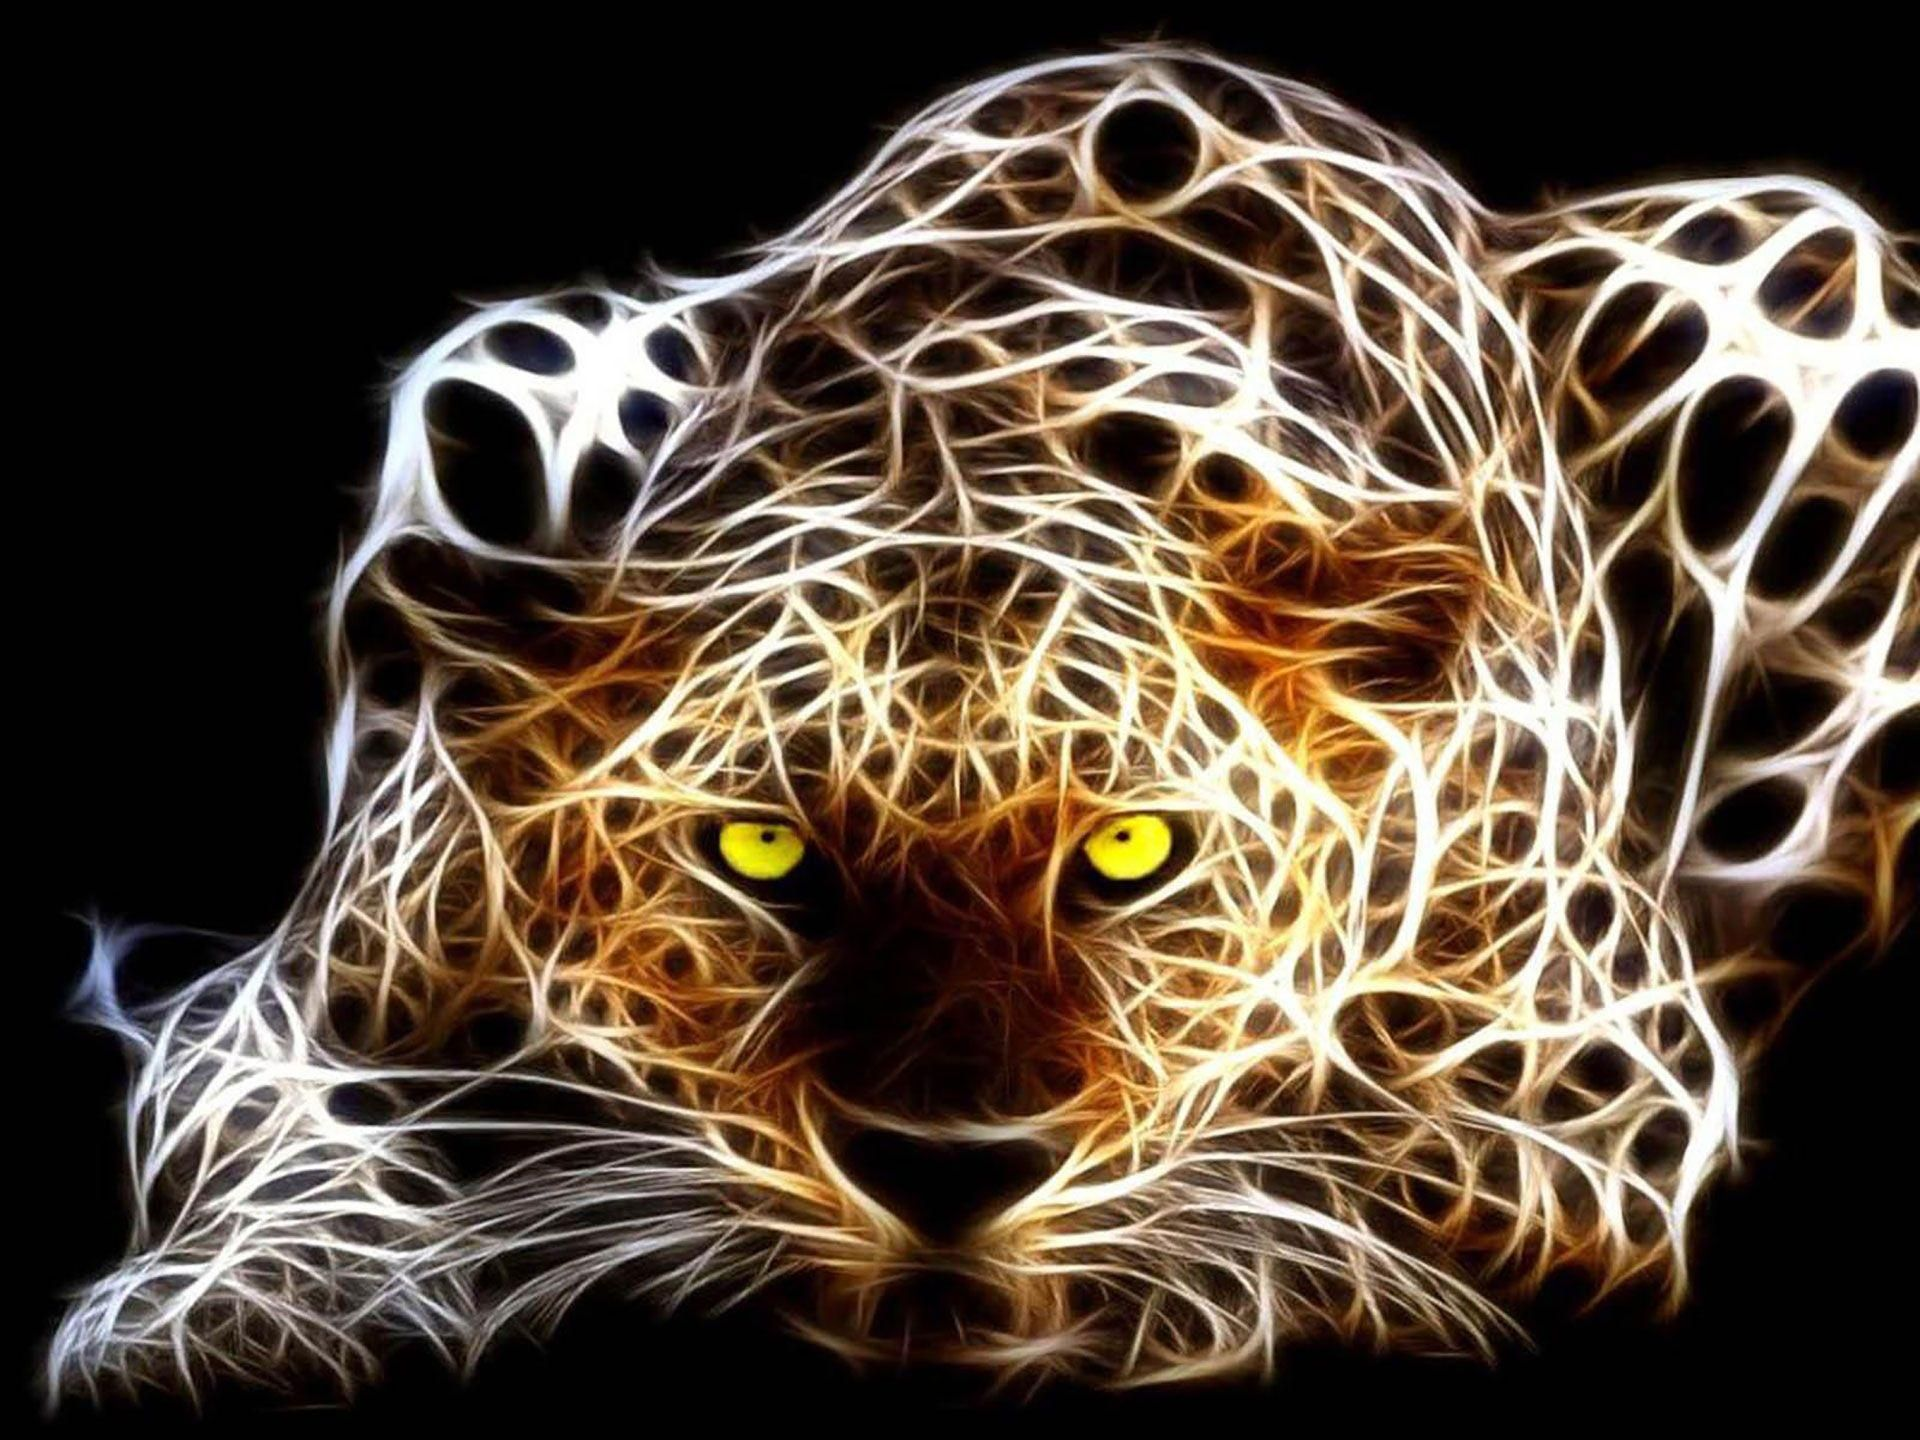 3d Tiger Wallpaper Hd Animal 3d Picture Animal Wallpaper Wild Animal Wallpaper Animated Animals